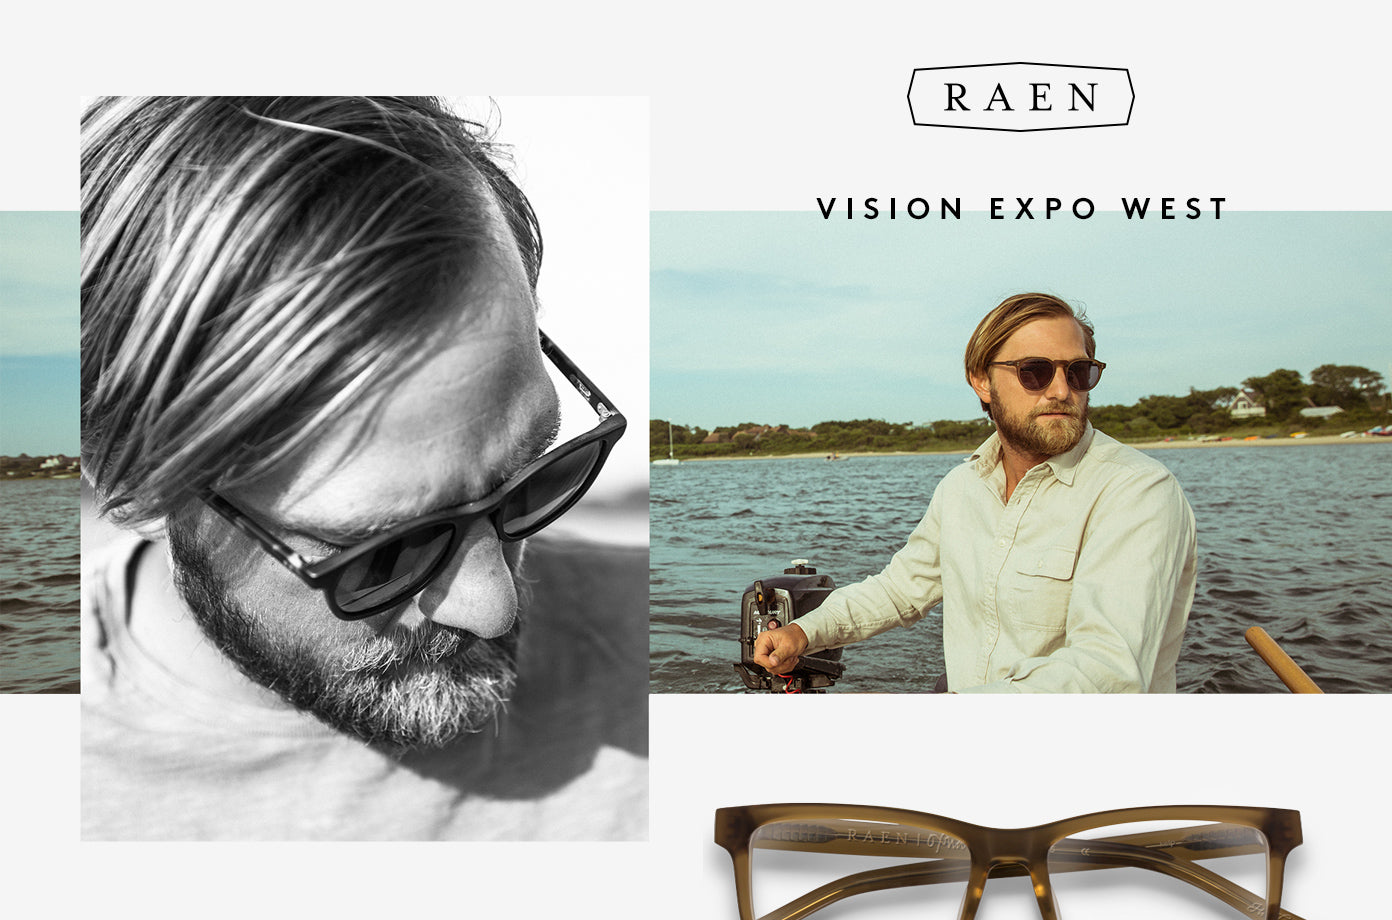 RAEN at Vision Expo West September 15 – 17